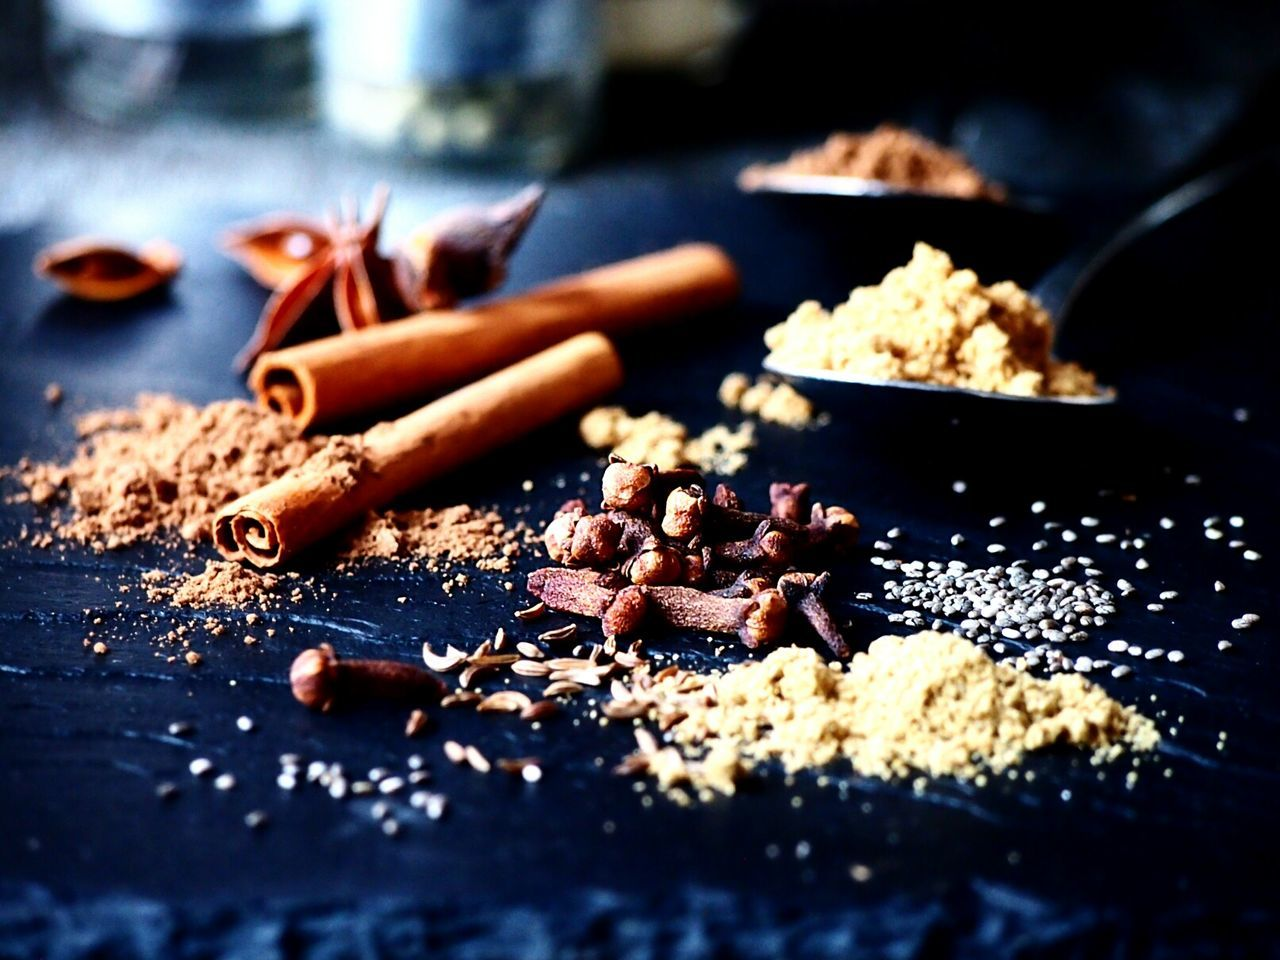 Close-up Food Art Simplicity Food Styling Table My Point Of View Foodgasm Spice Focus On Foreground Spices Nature Food Photography